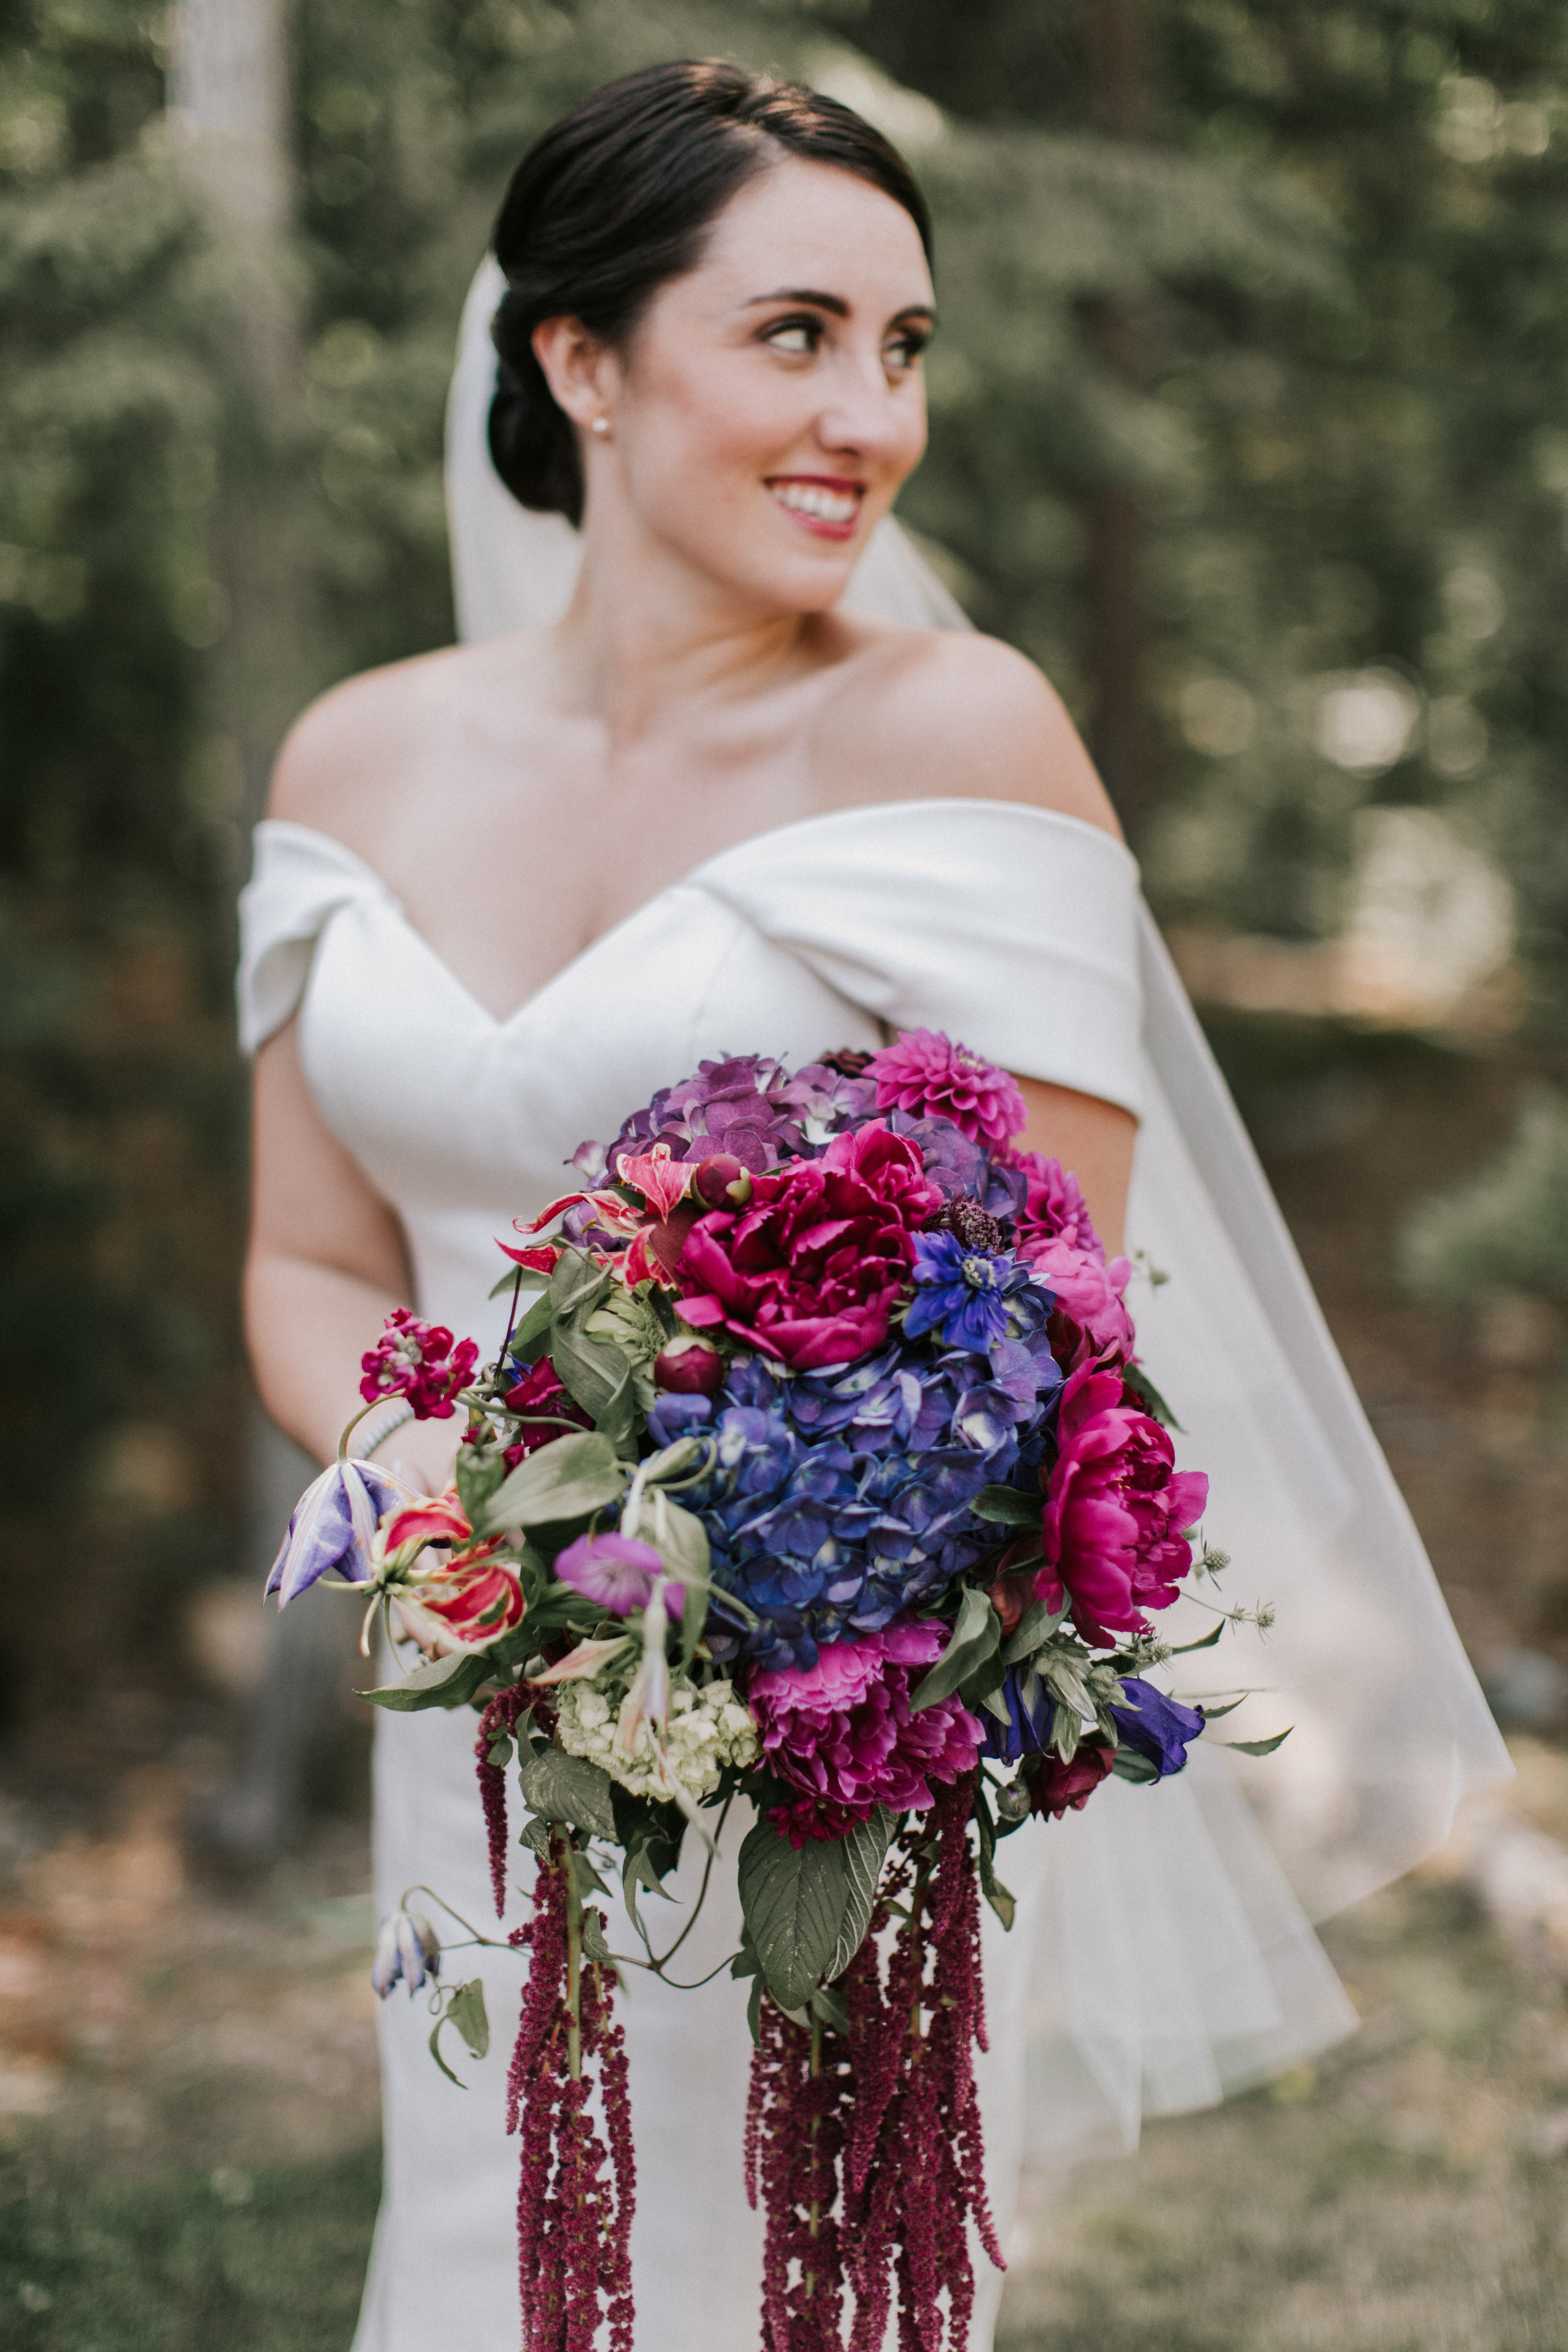 Bridal portrait with bouquet at Hidden Pond wedding planned by A Family Affair of Maine